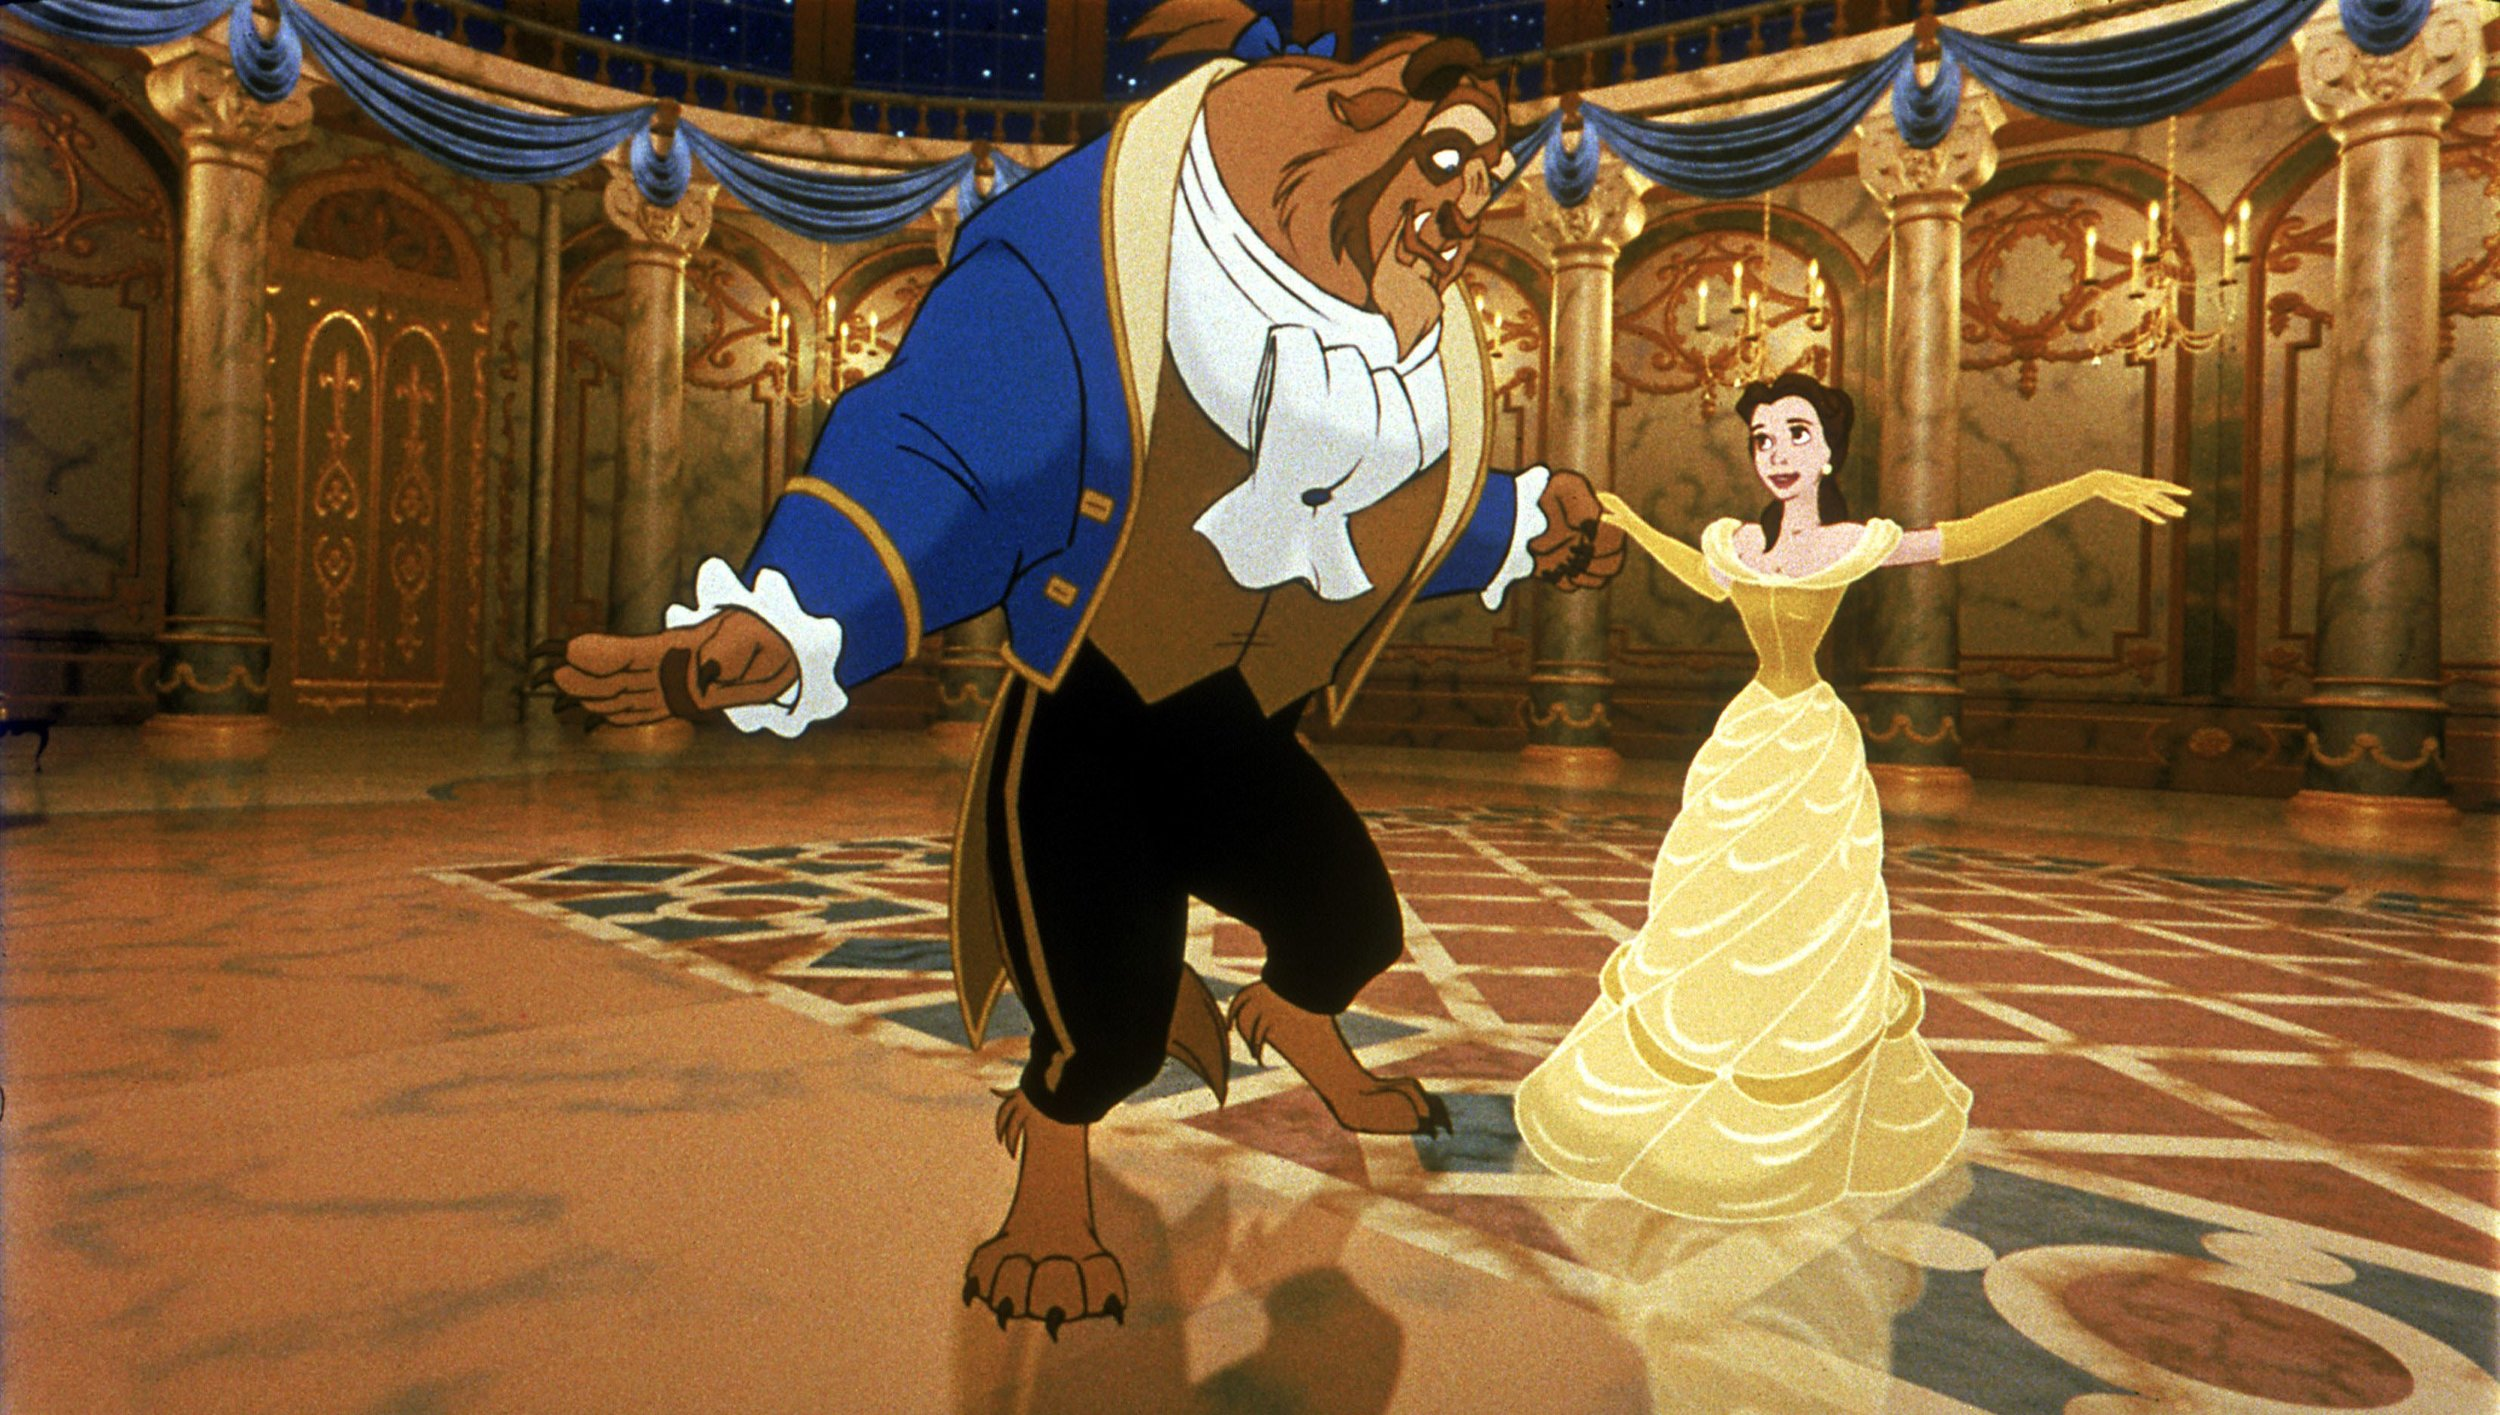 5. Beauty and the Beast (1991) -